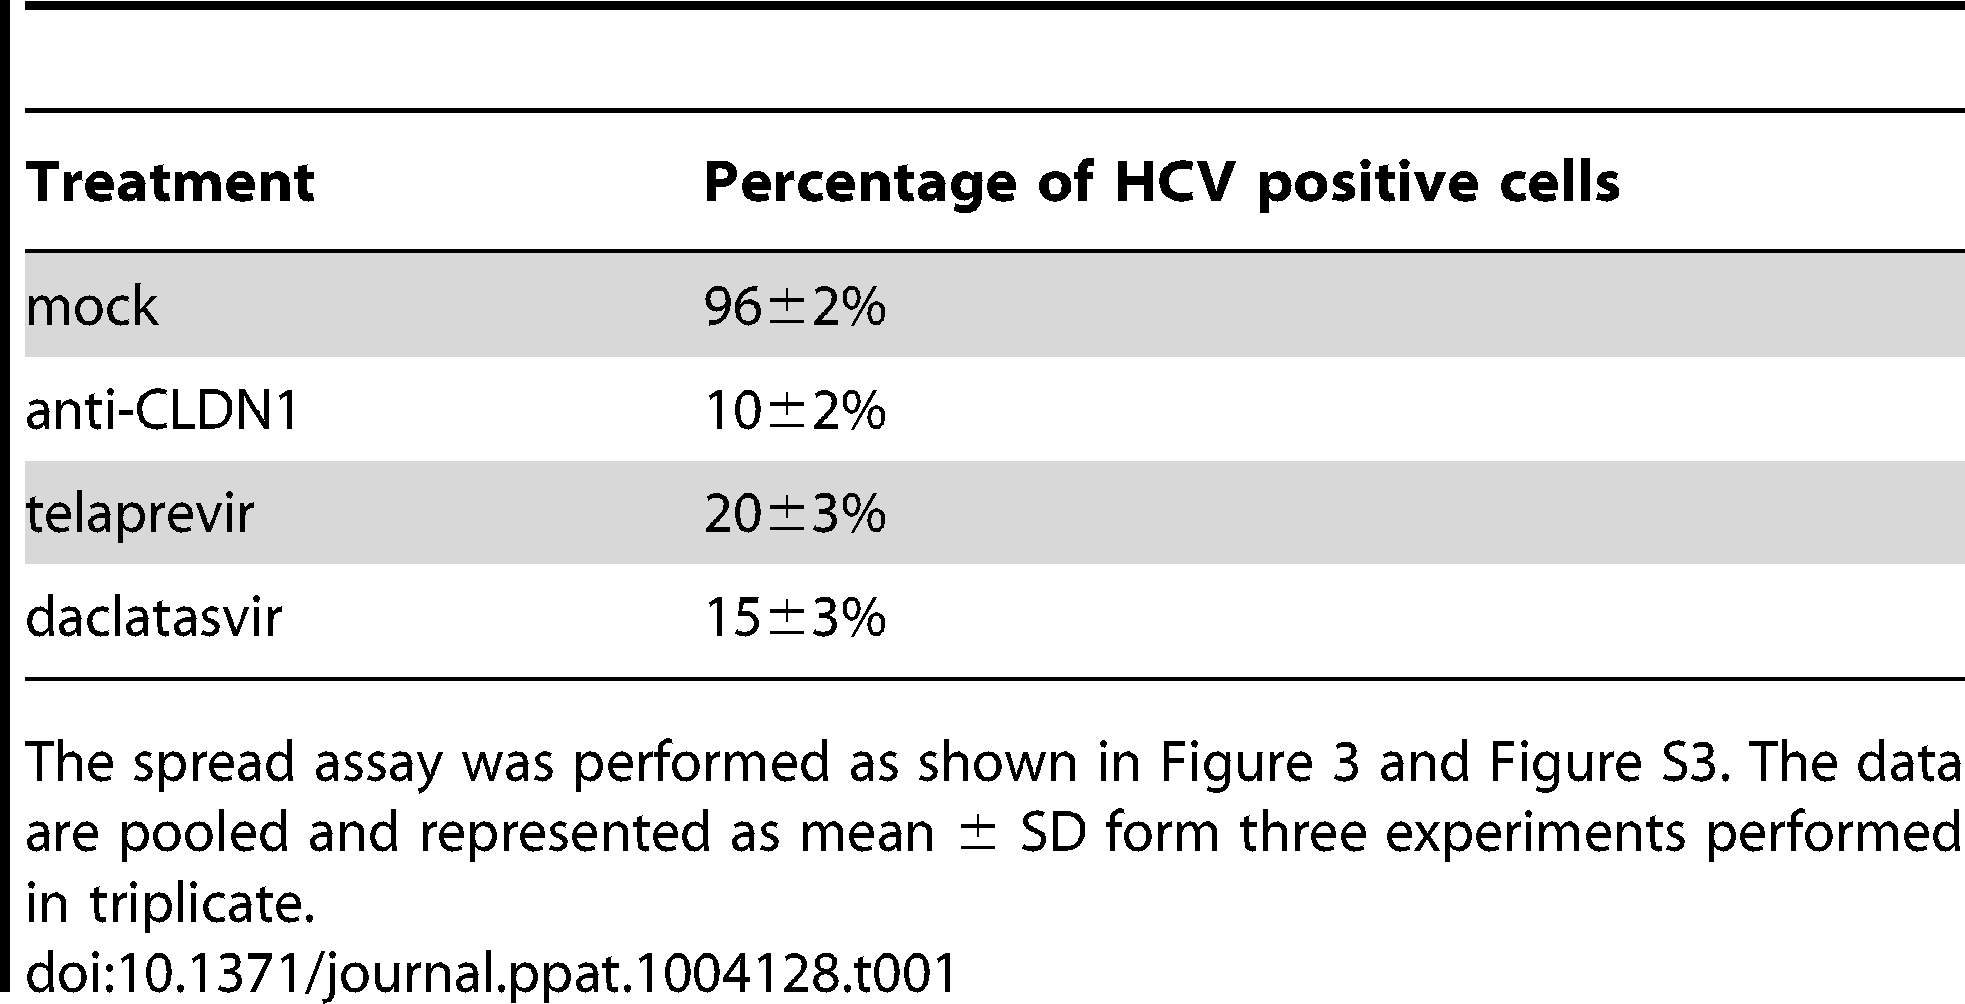 The CLDN1-specific antibody is efficient in inhibiting HCV spread.